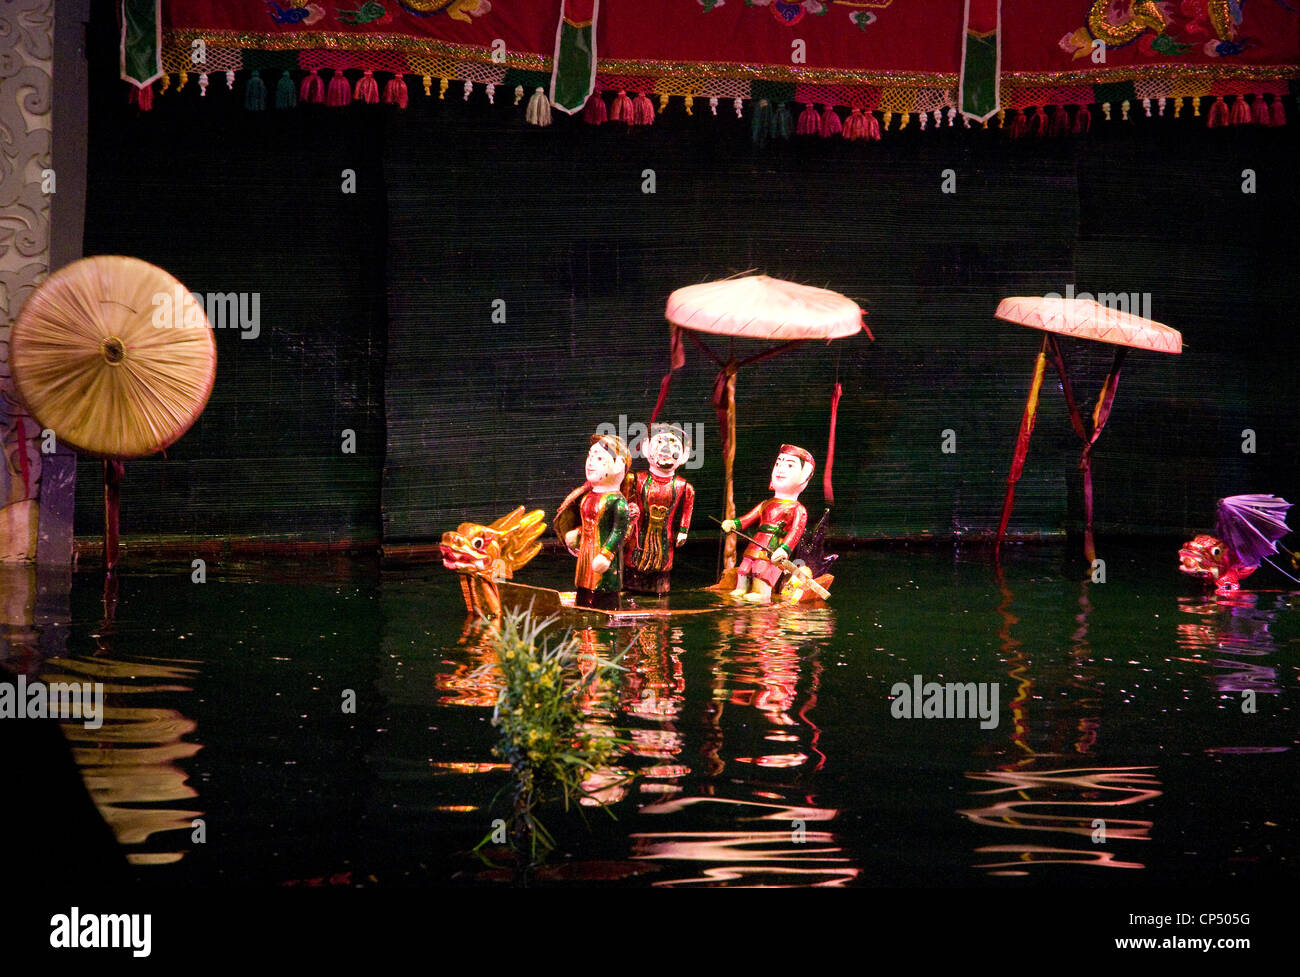 Water puppets 'dance' on water in popular performances in Hanoi - Stock Image